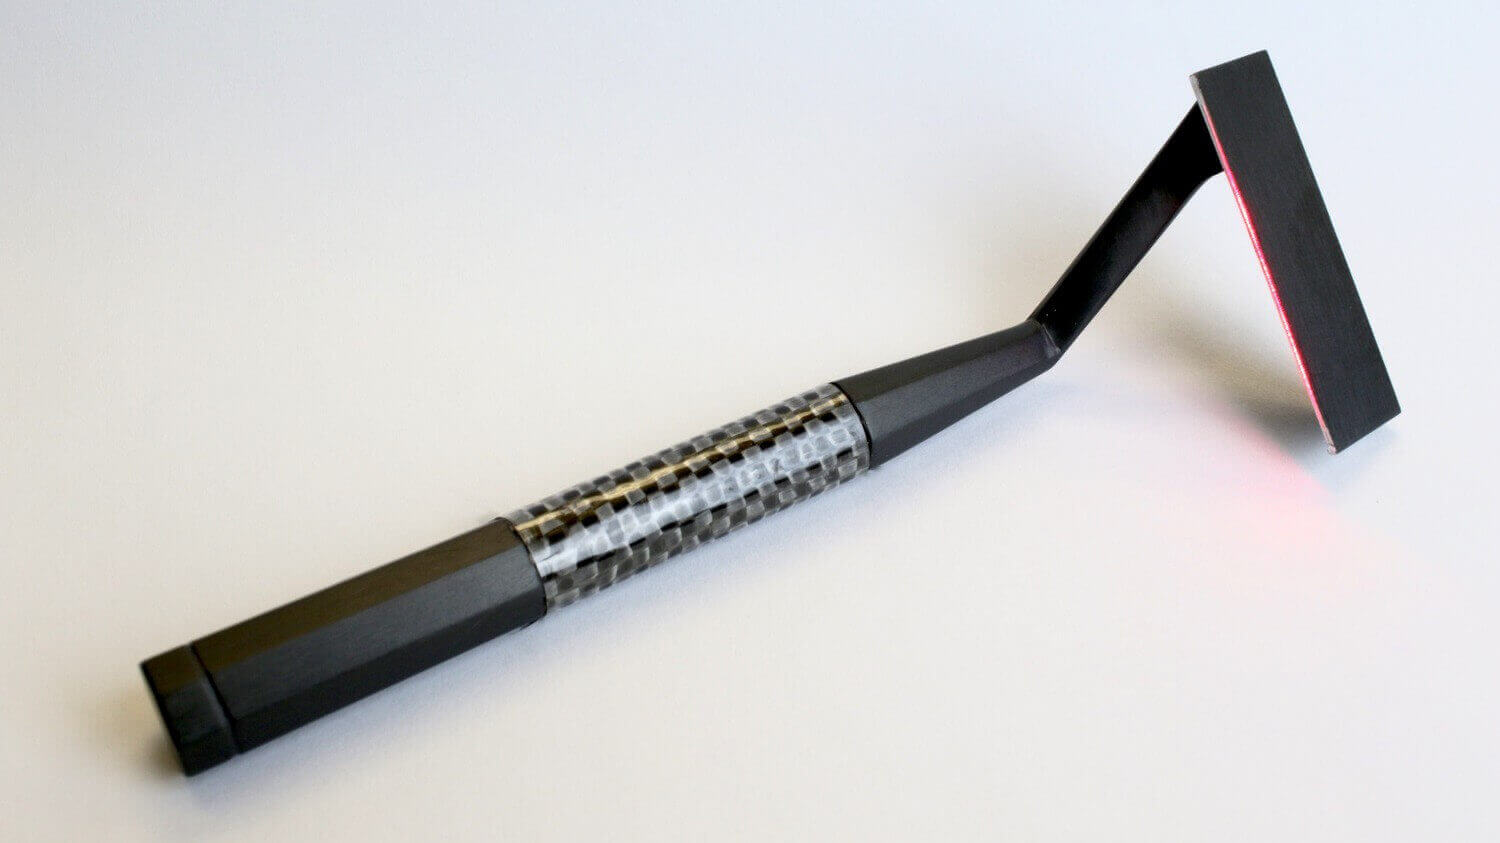 Skarp Laser Razor is Suspended from Kickstarter | All3DP